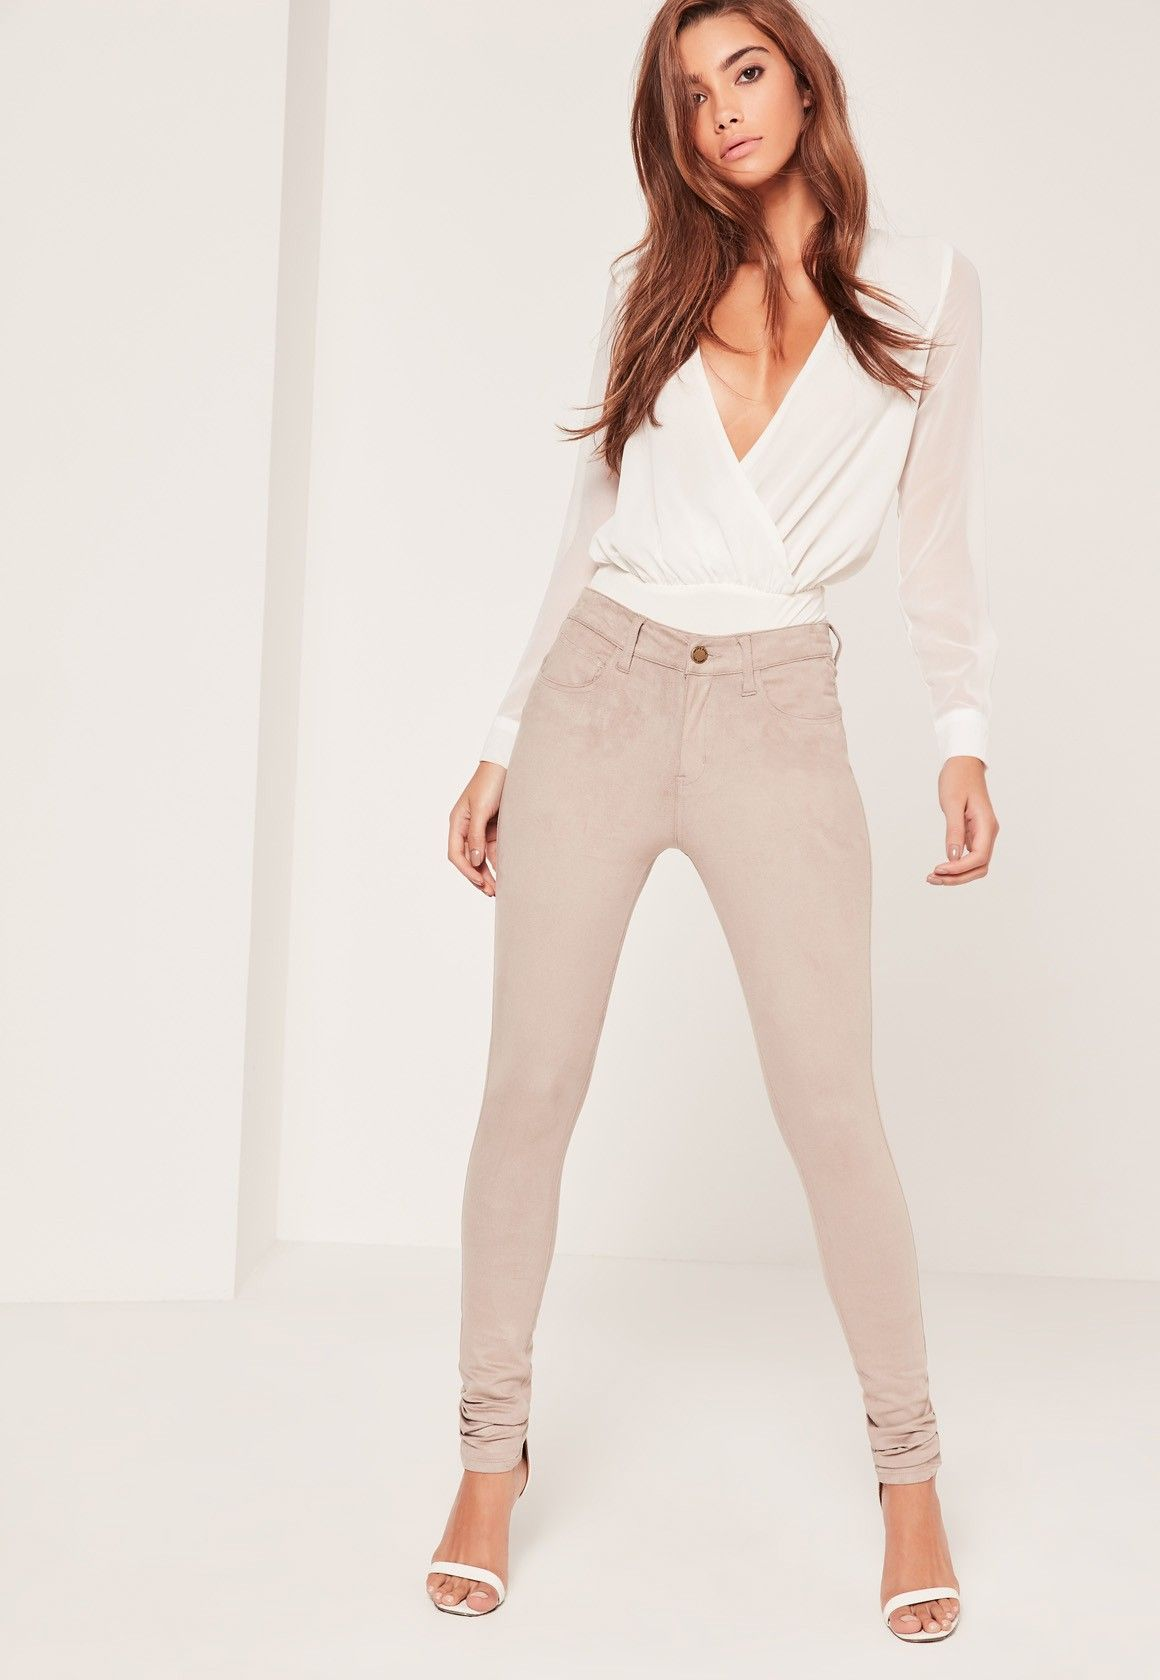 Lyst - Missguided Faux Suede High Waisted Skinny Trousers